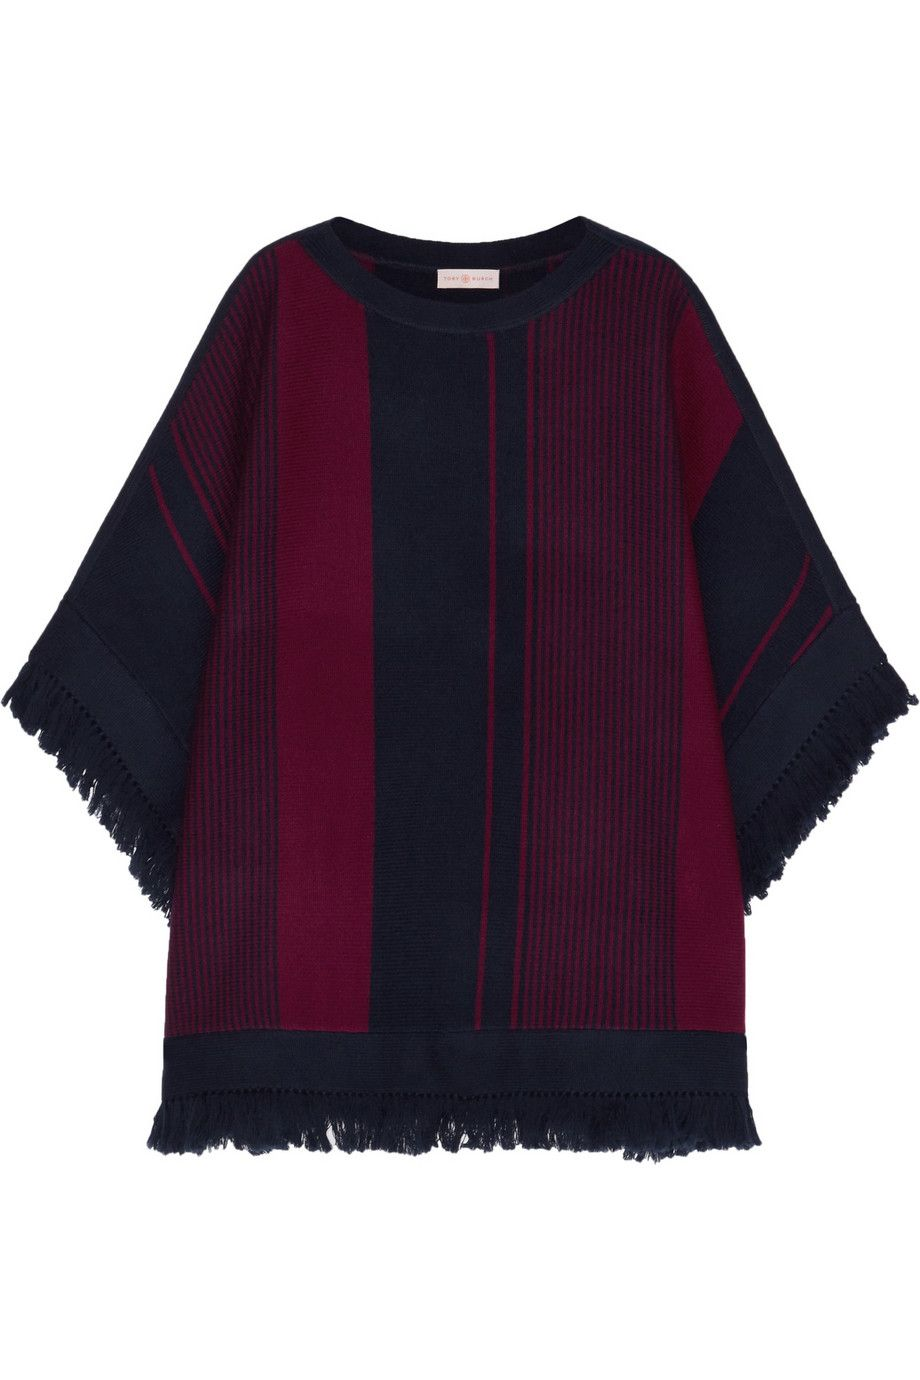 "<p><em>Tory Burch sweater, $595, </em><a href=""http://www.toryburch.com/clothing/sweaters/"" target=""_blank"">toryburch.com</a>. </p>"